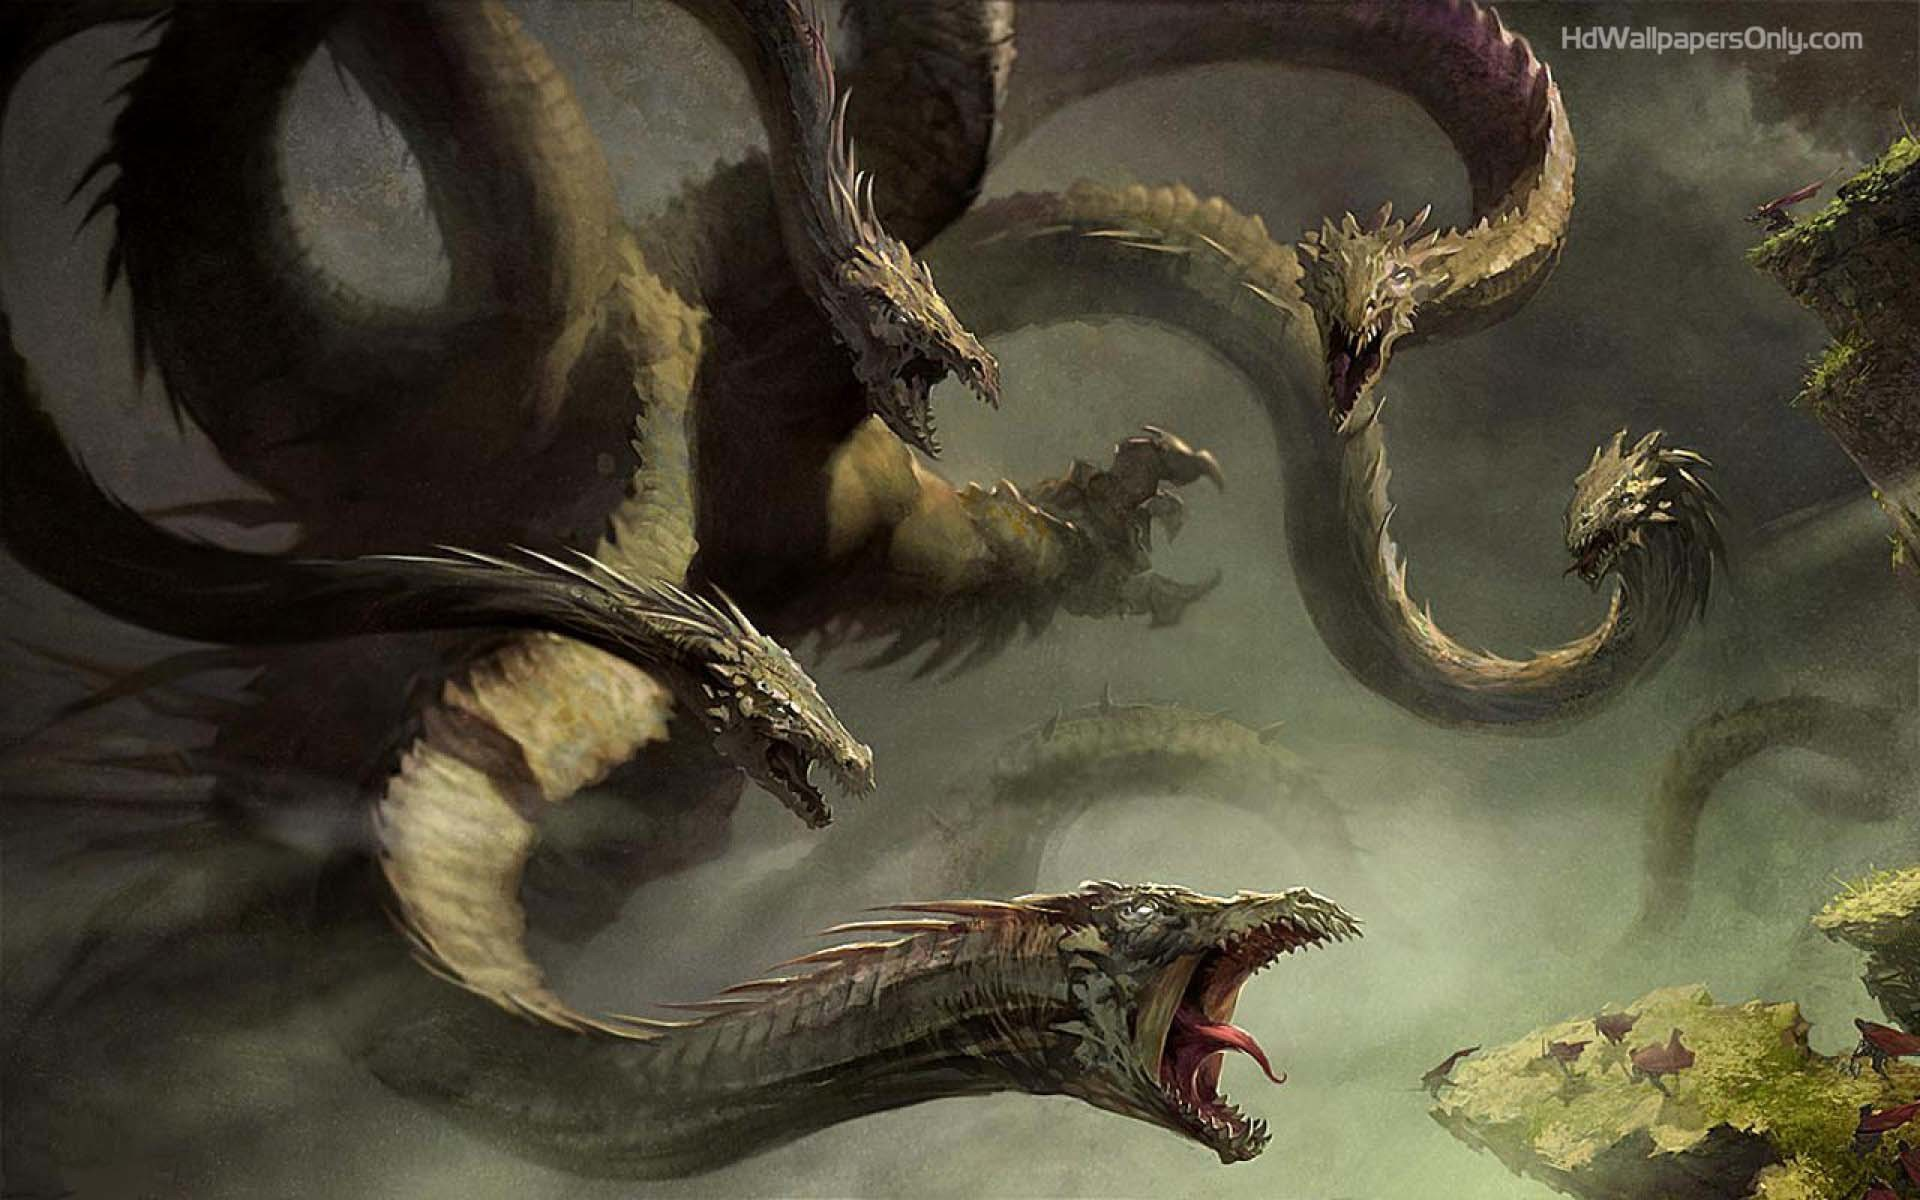 1920x1200 1920x1080 1080P Dragon Wallpaper - WallpaperSafari